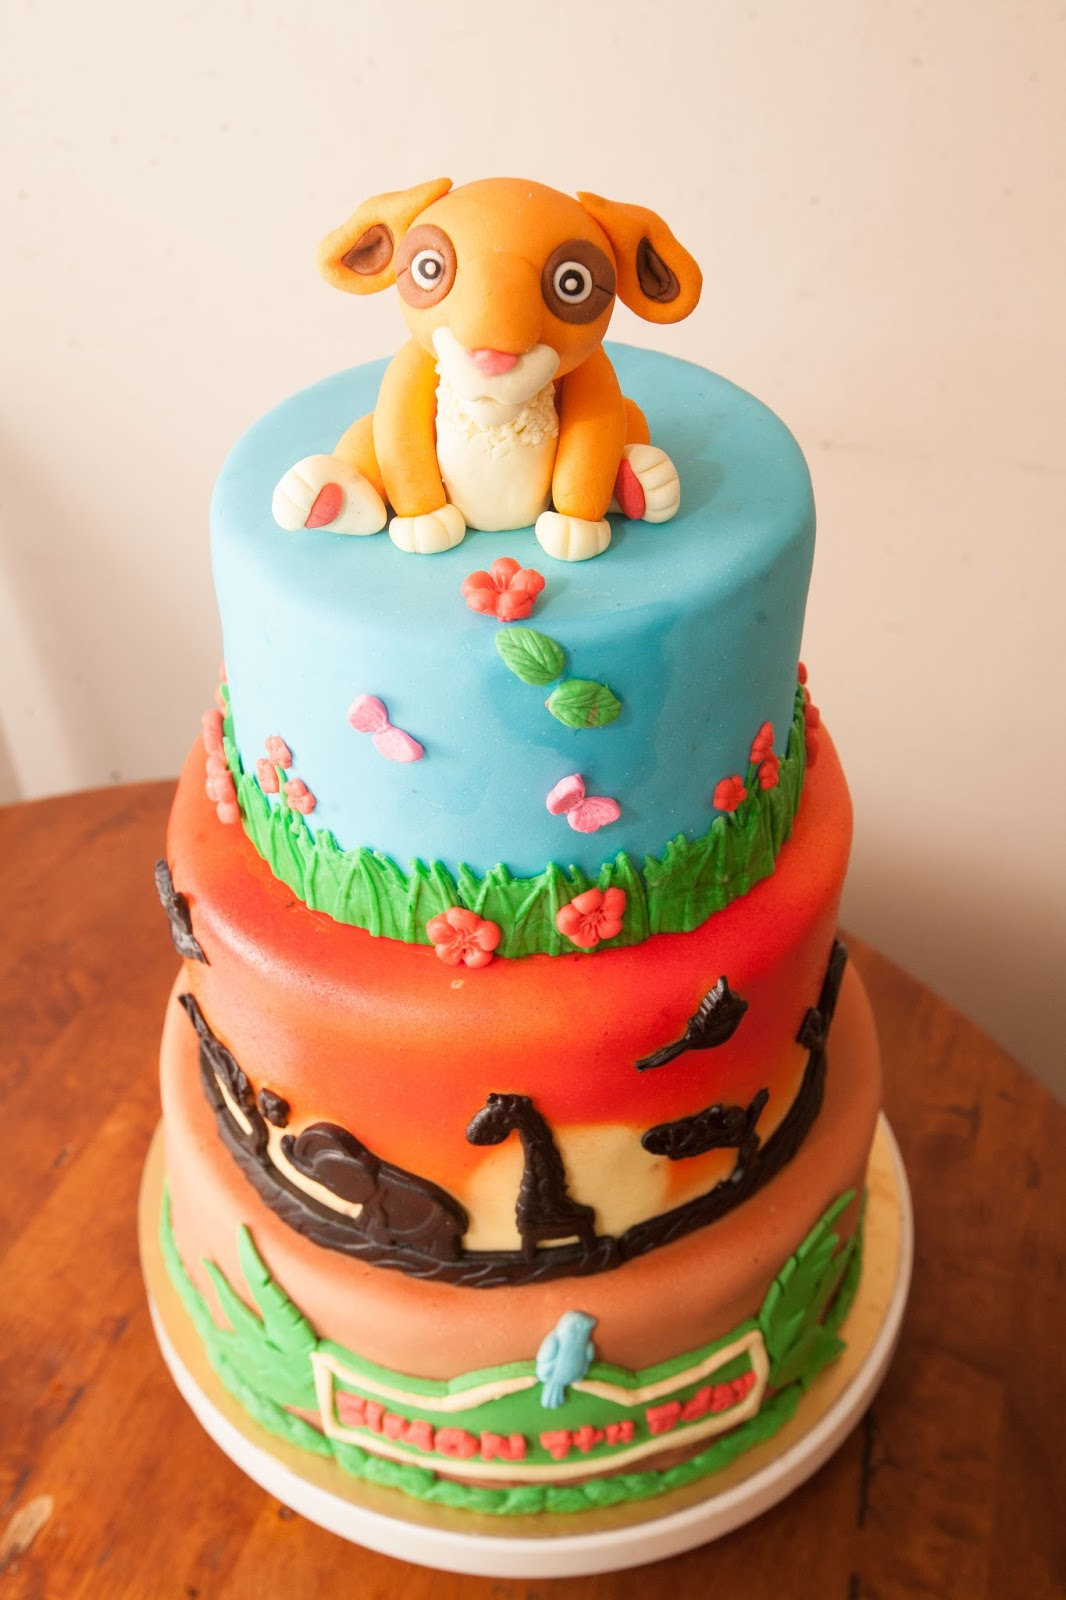 Birthday Balloons And Decoration Image Inspiration of Cake and